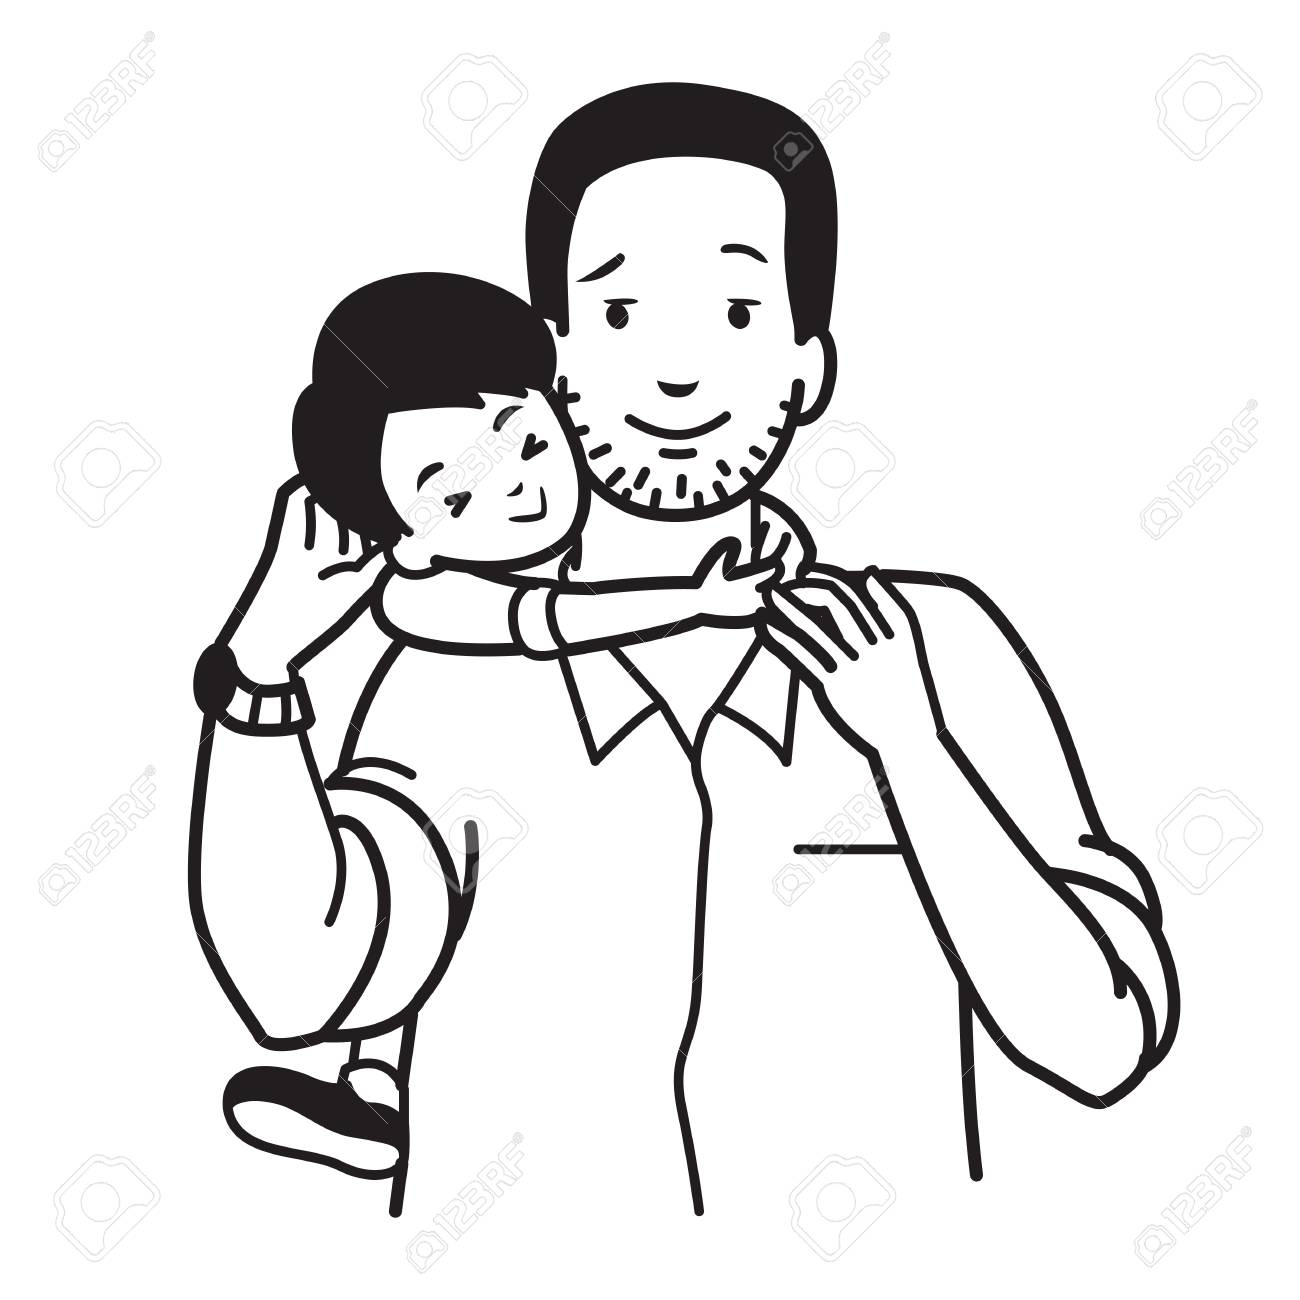 Father and son drawing clipart png download Father And Son Drawing at GetDrawings.com | Free for personal use ... png download